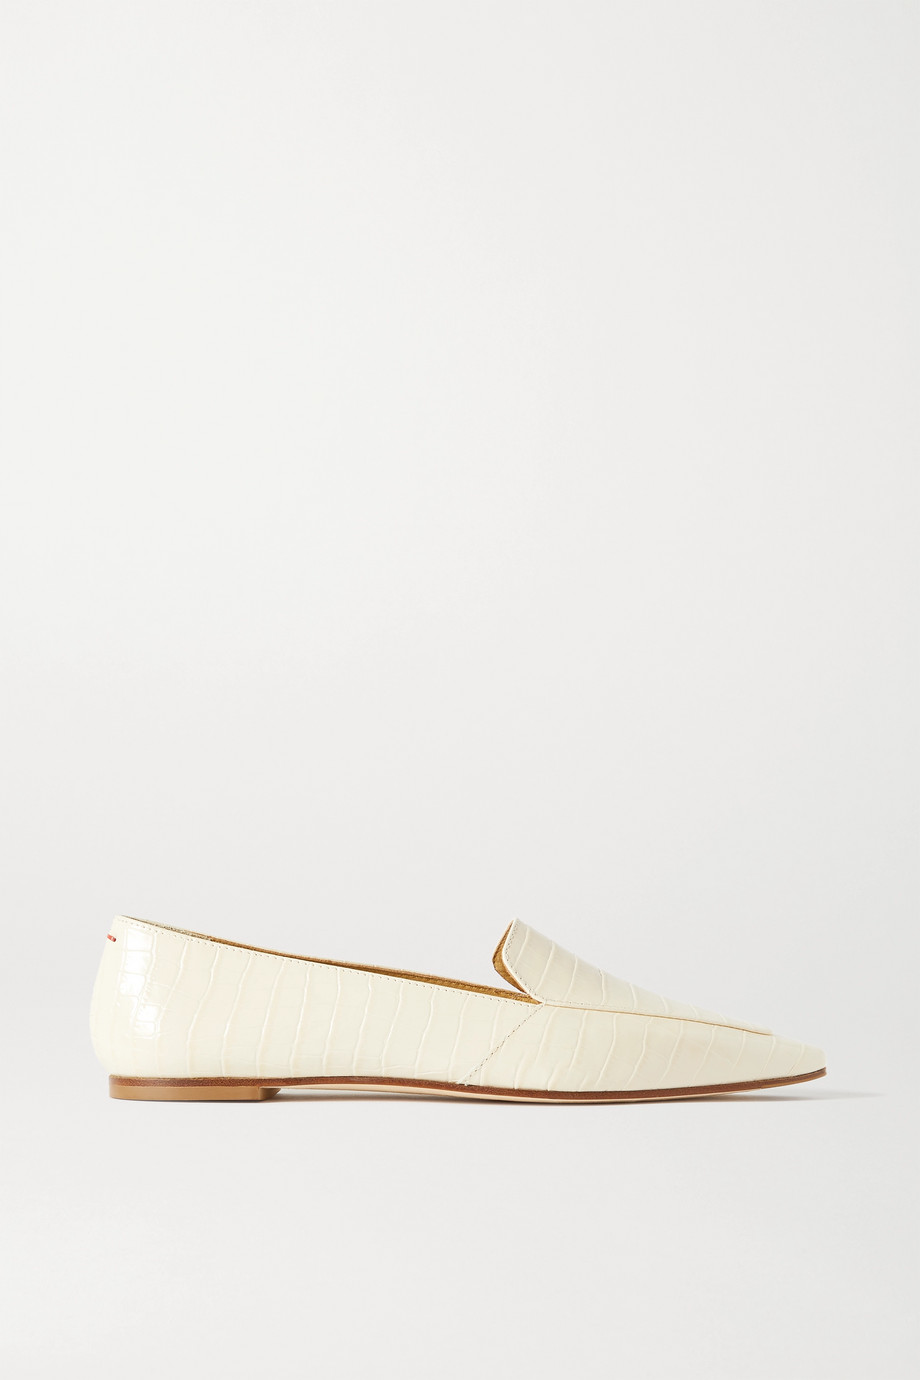 aeyde Aurora croc-effect leather loafers